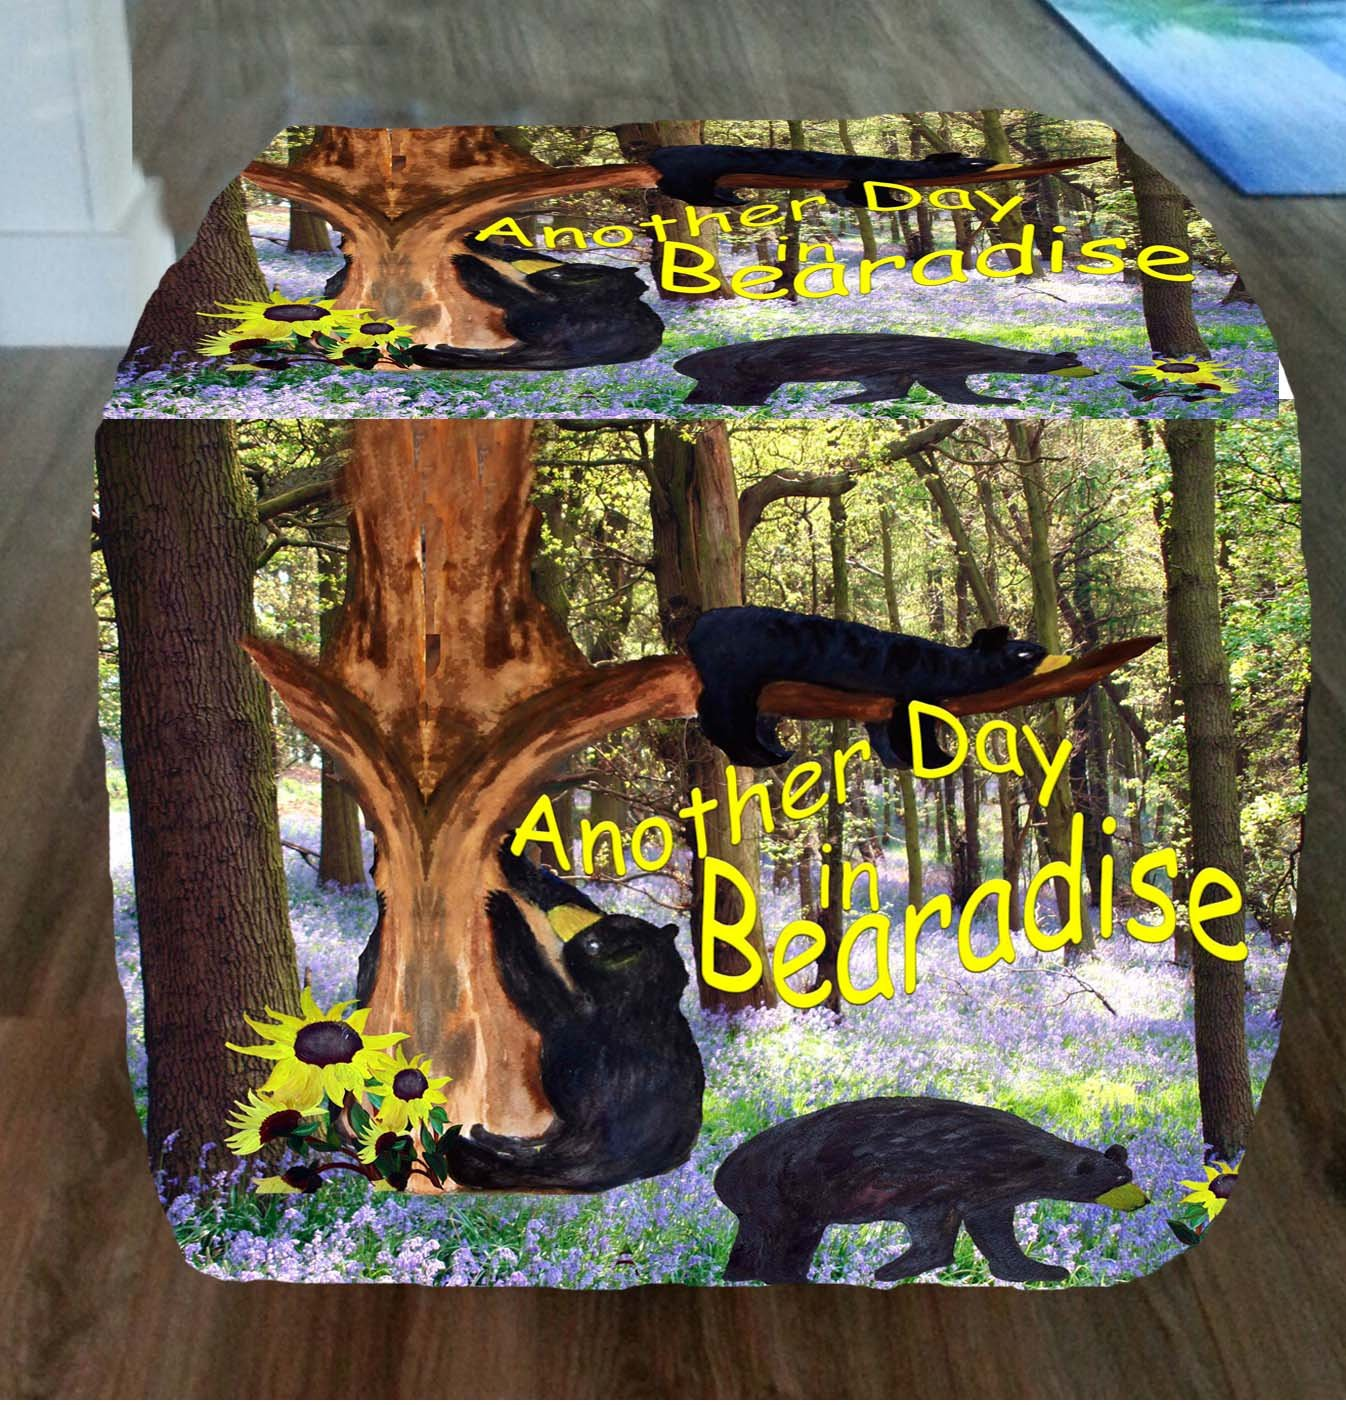 Another Day in Bearadise Black Bear Ottoman From My Art